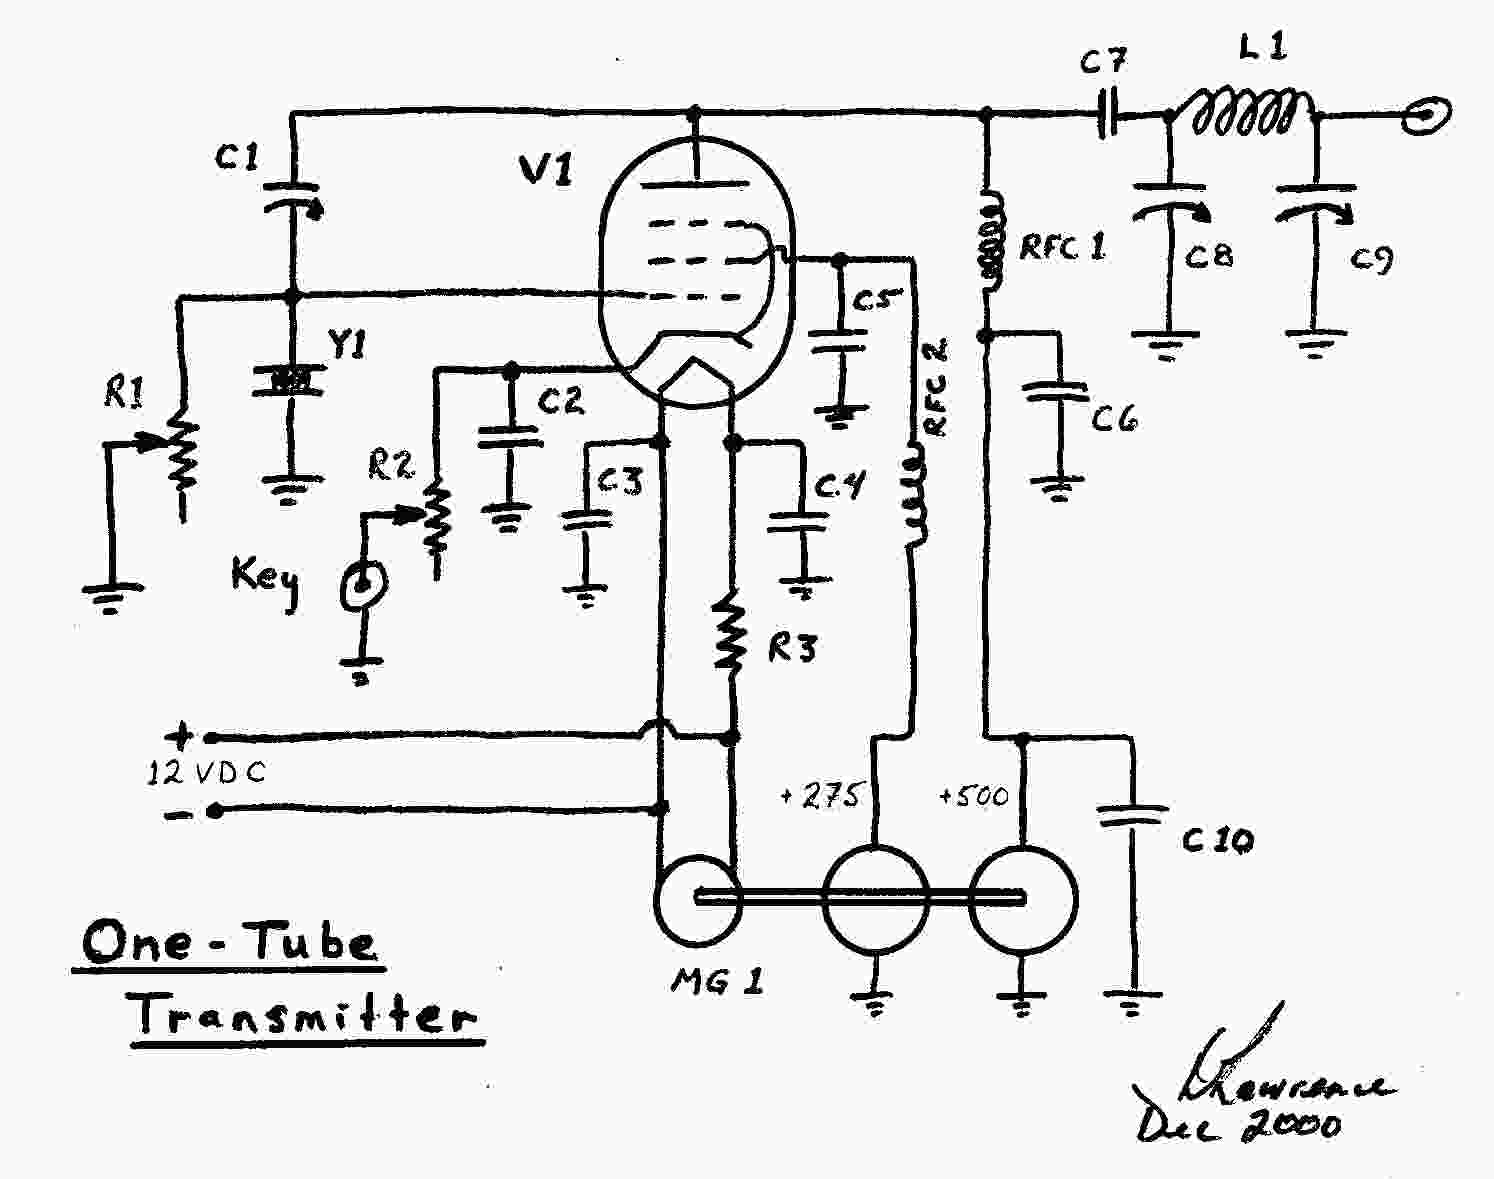 Stereo Preamp Circuit Diagram Tradeoficcom Wiring Site Schematic Along With Remote Control Switch Receiver Preamplifier Data Effects Loop Onetube Am